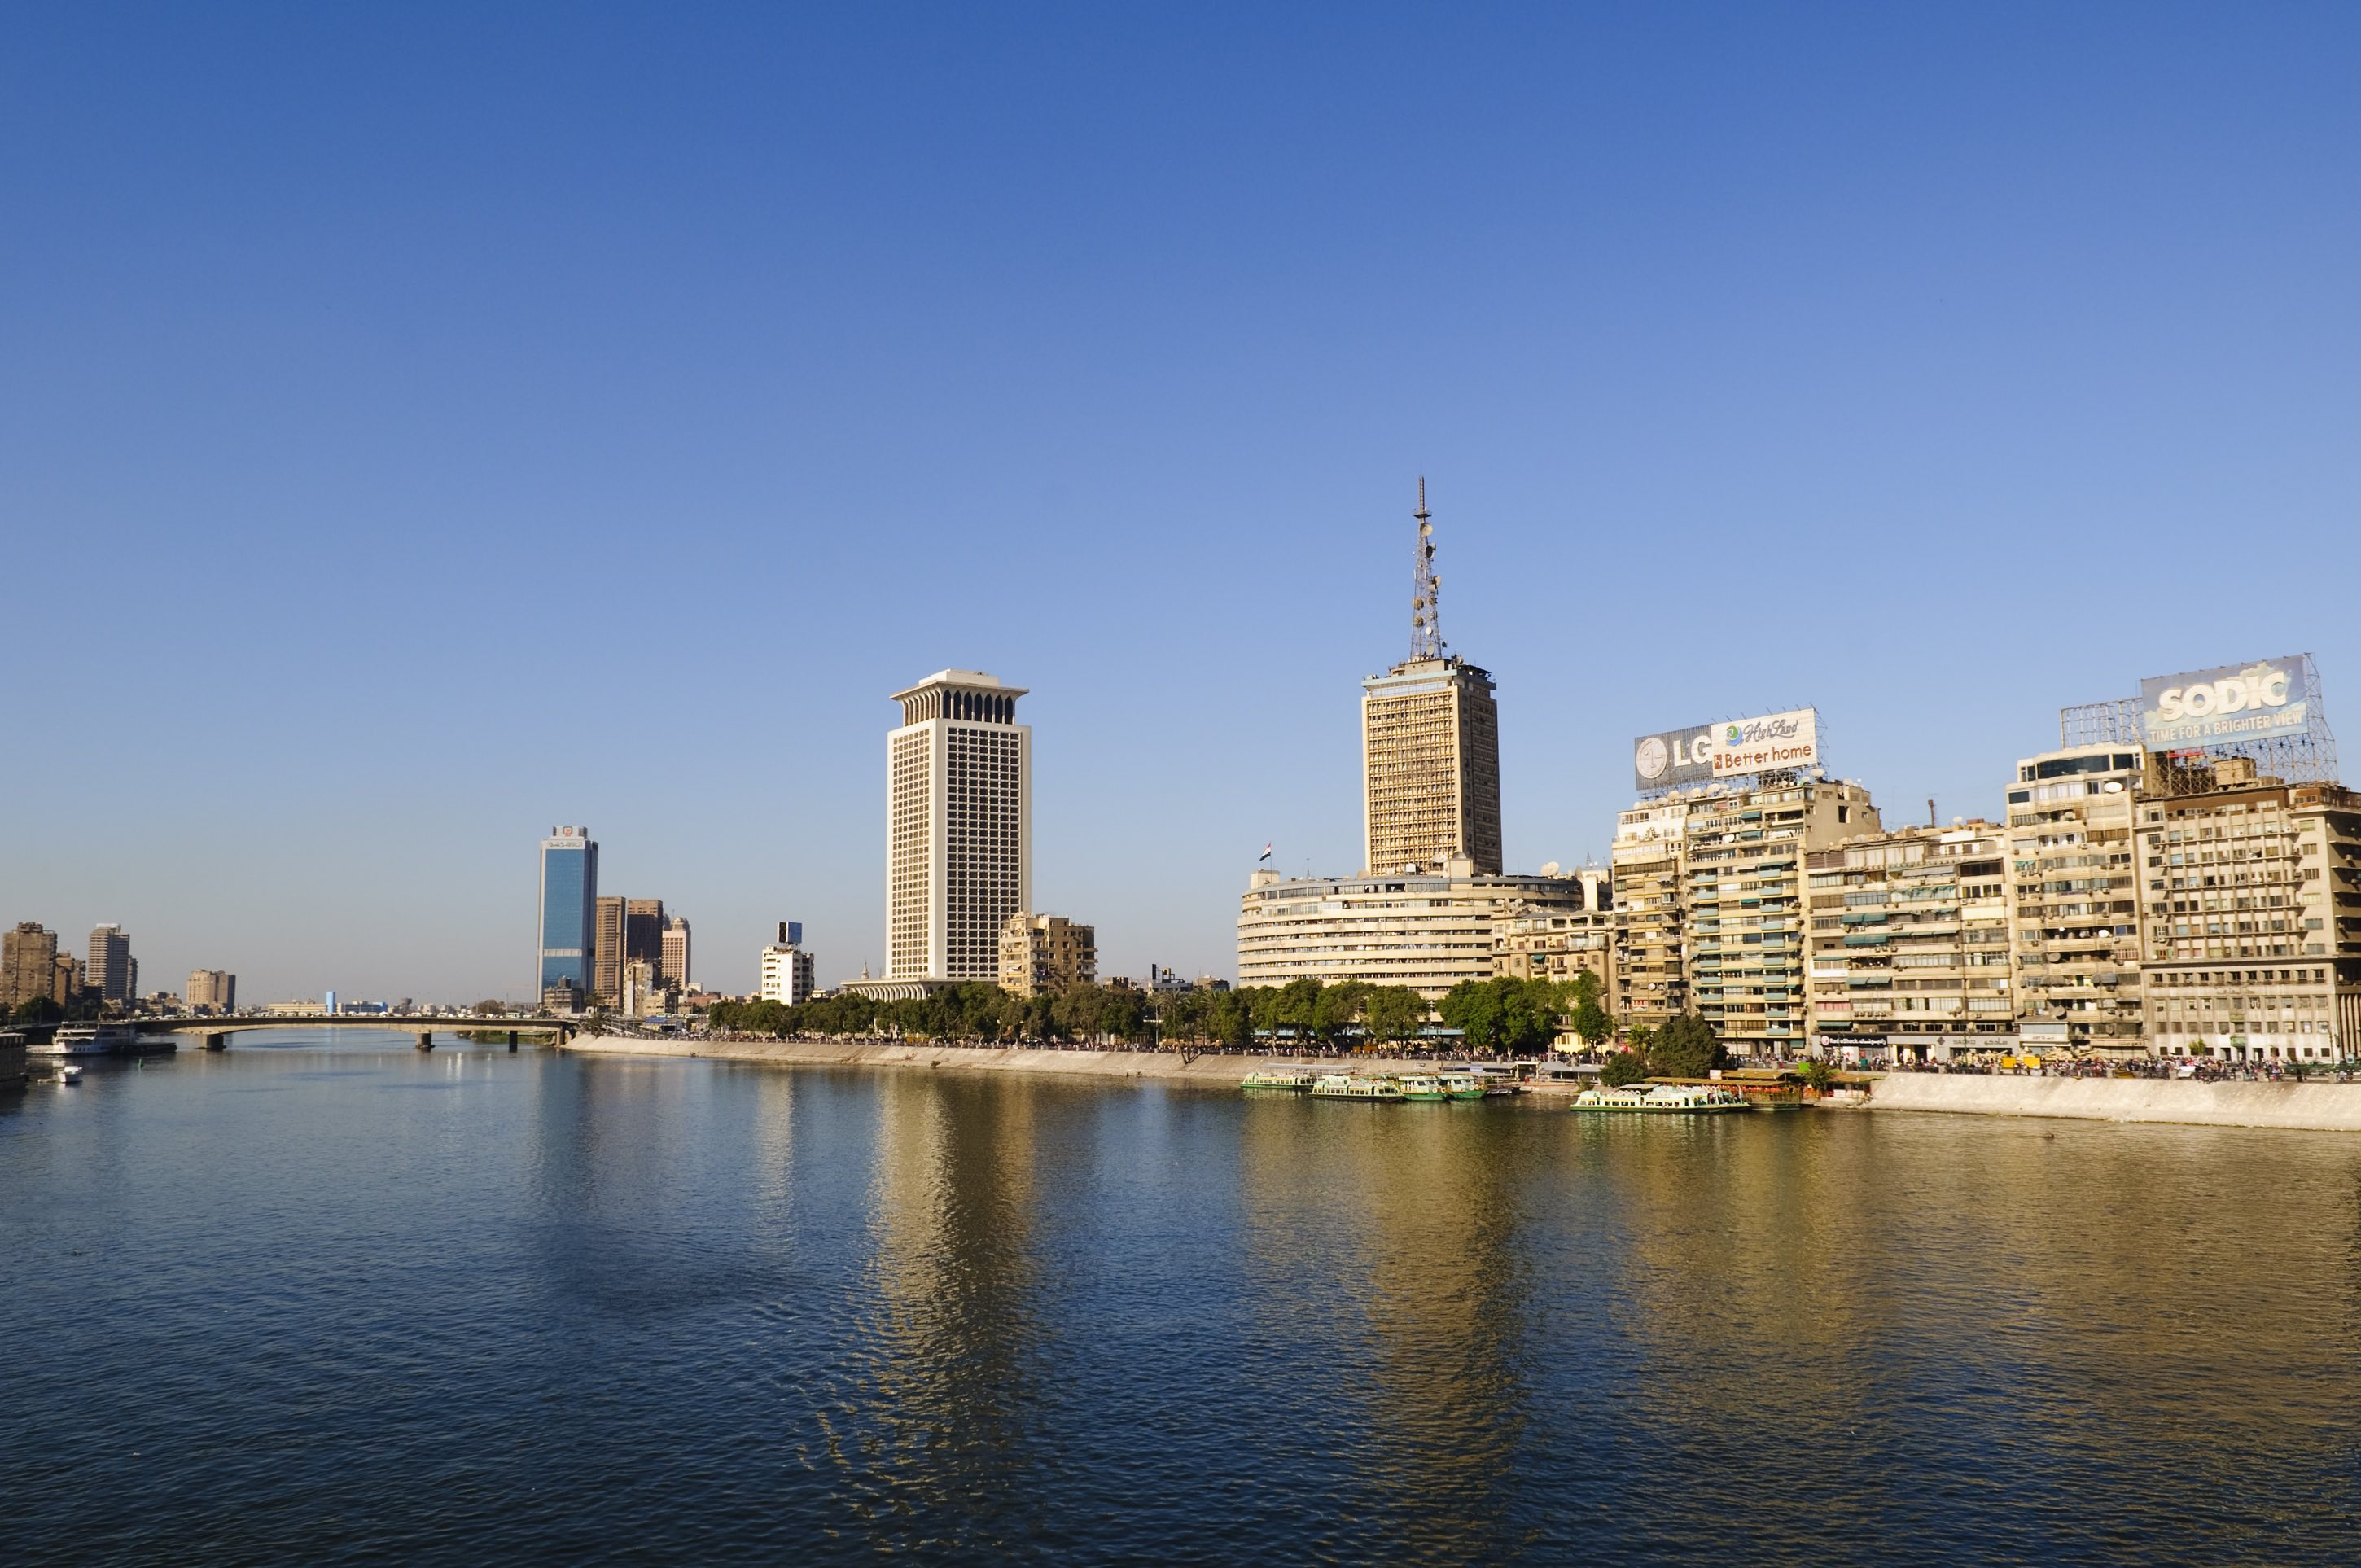 Buildings and Nile River in Cairo, Egypt